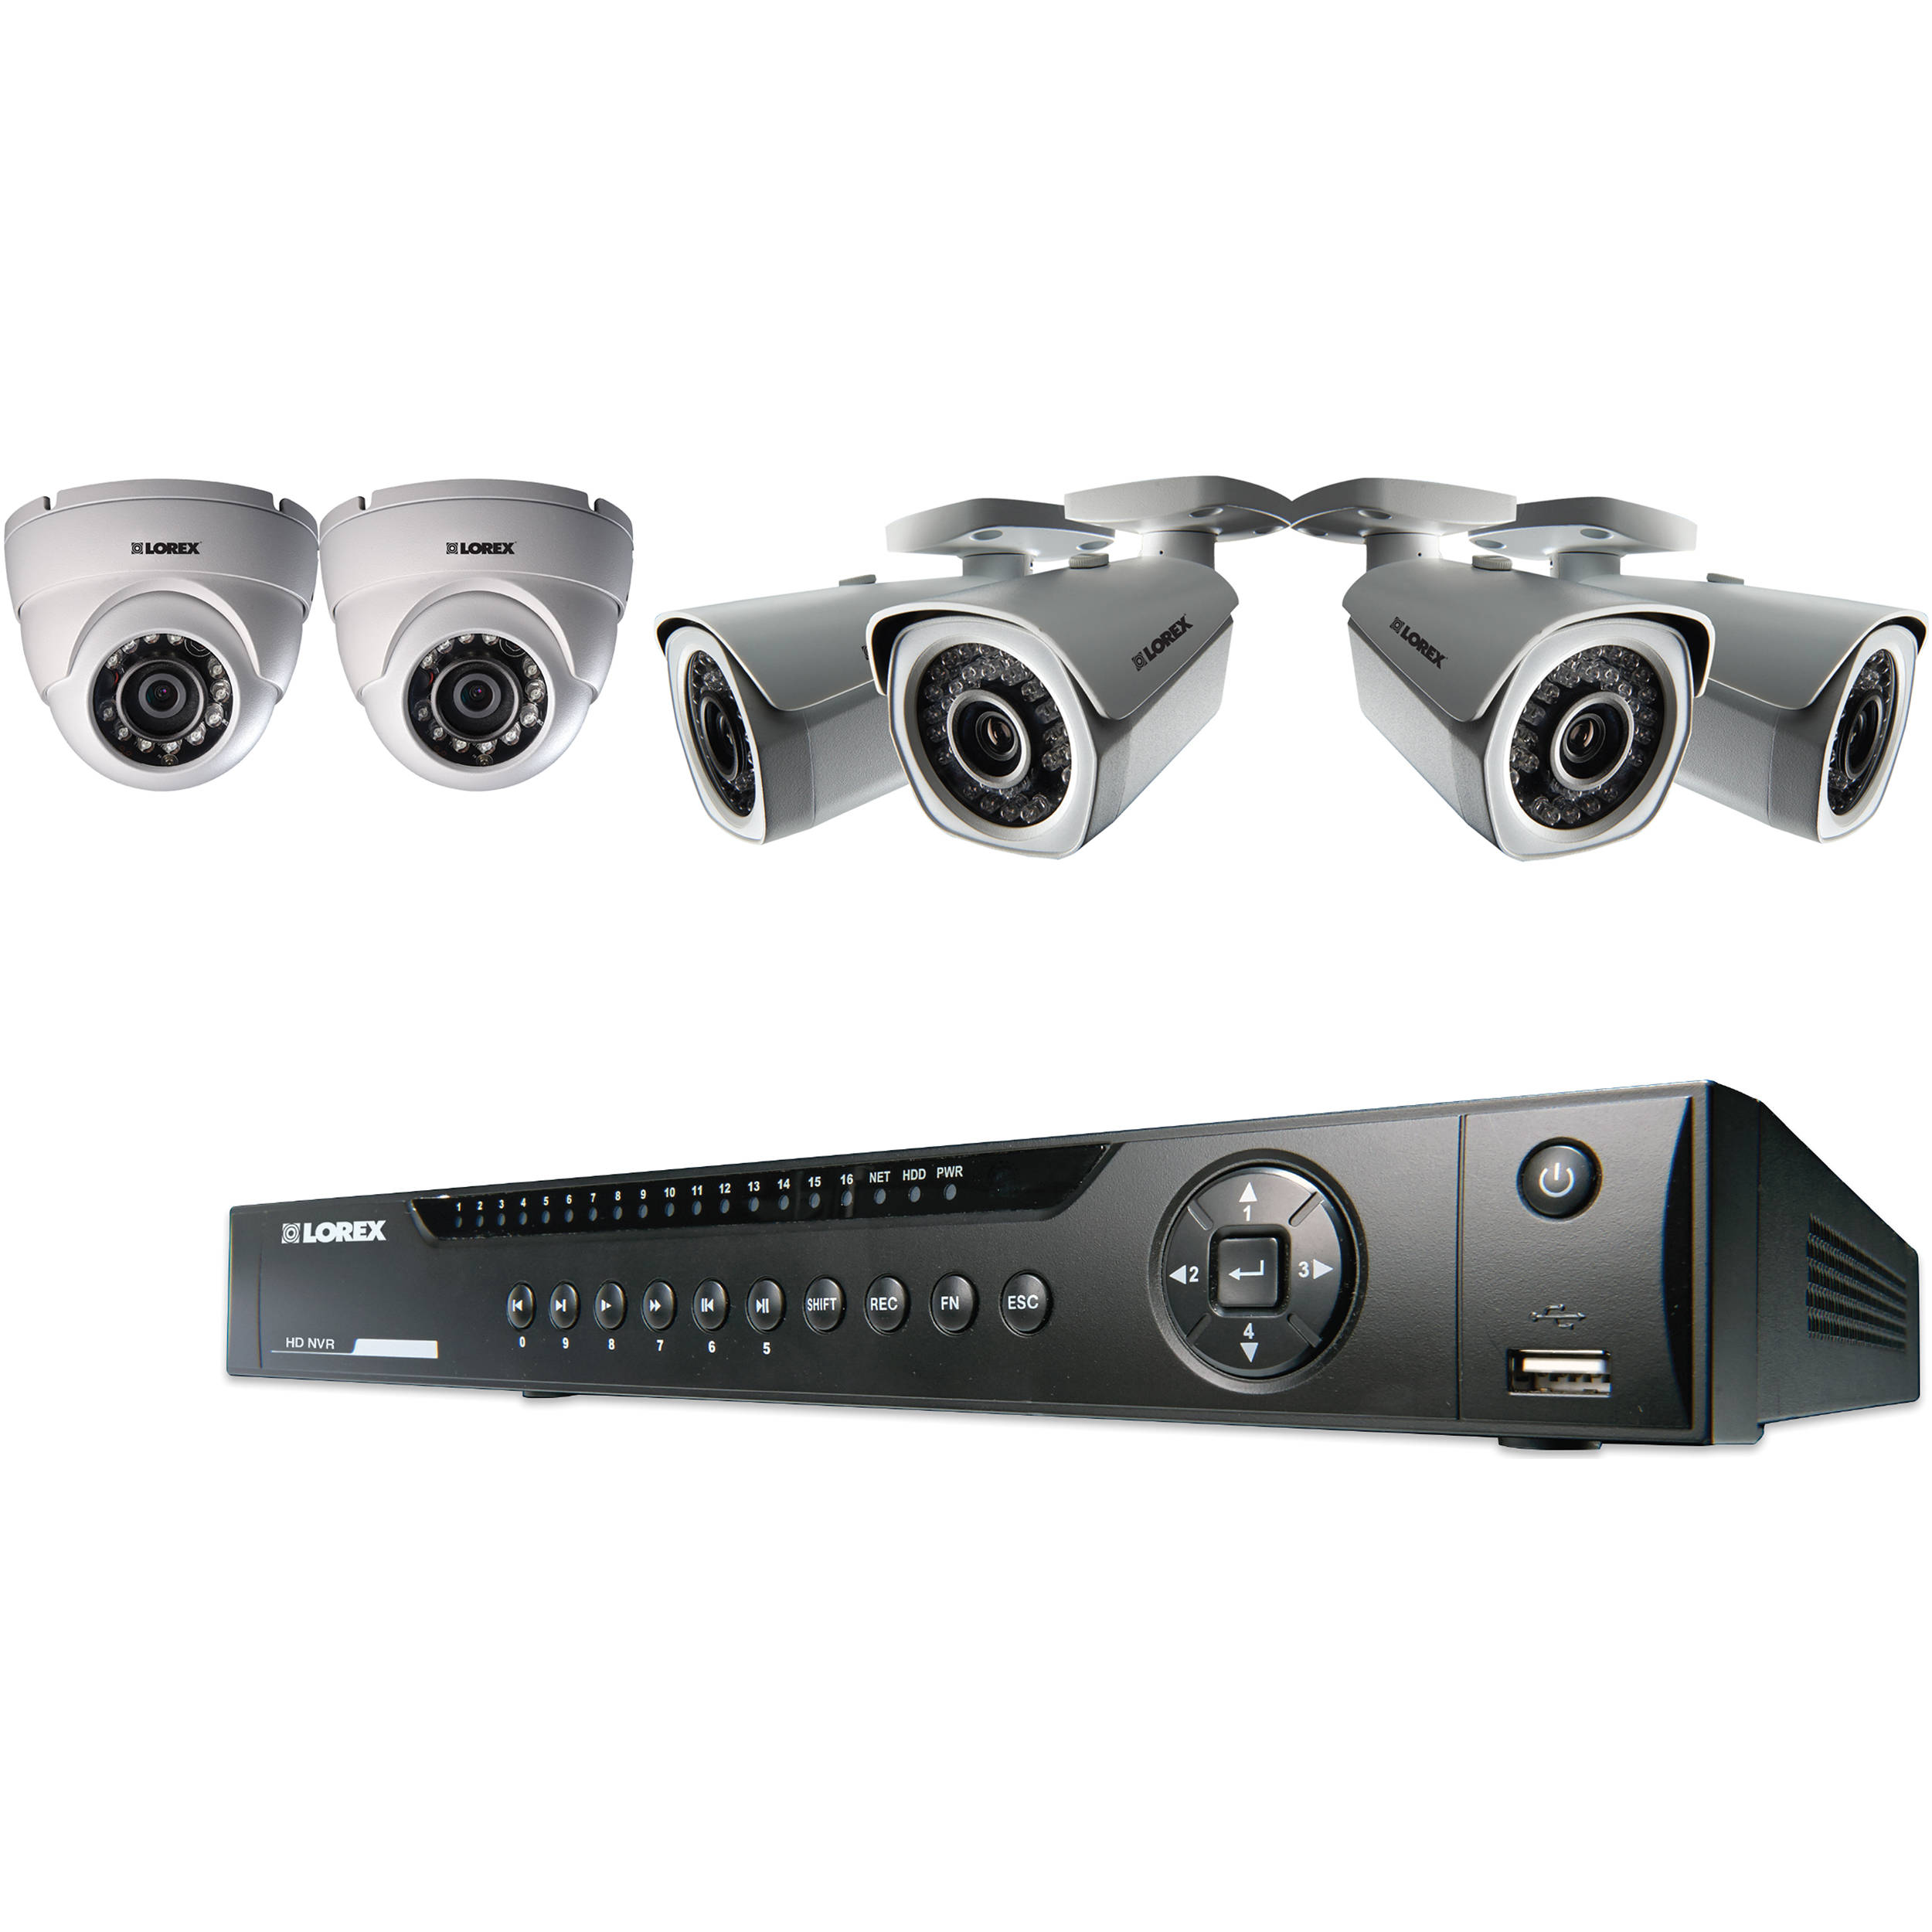 Lorex 8-Ch NVR with 4 Bullet & 2 Dome Cameras